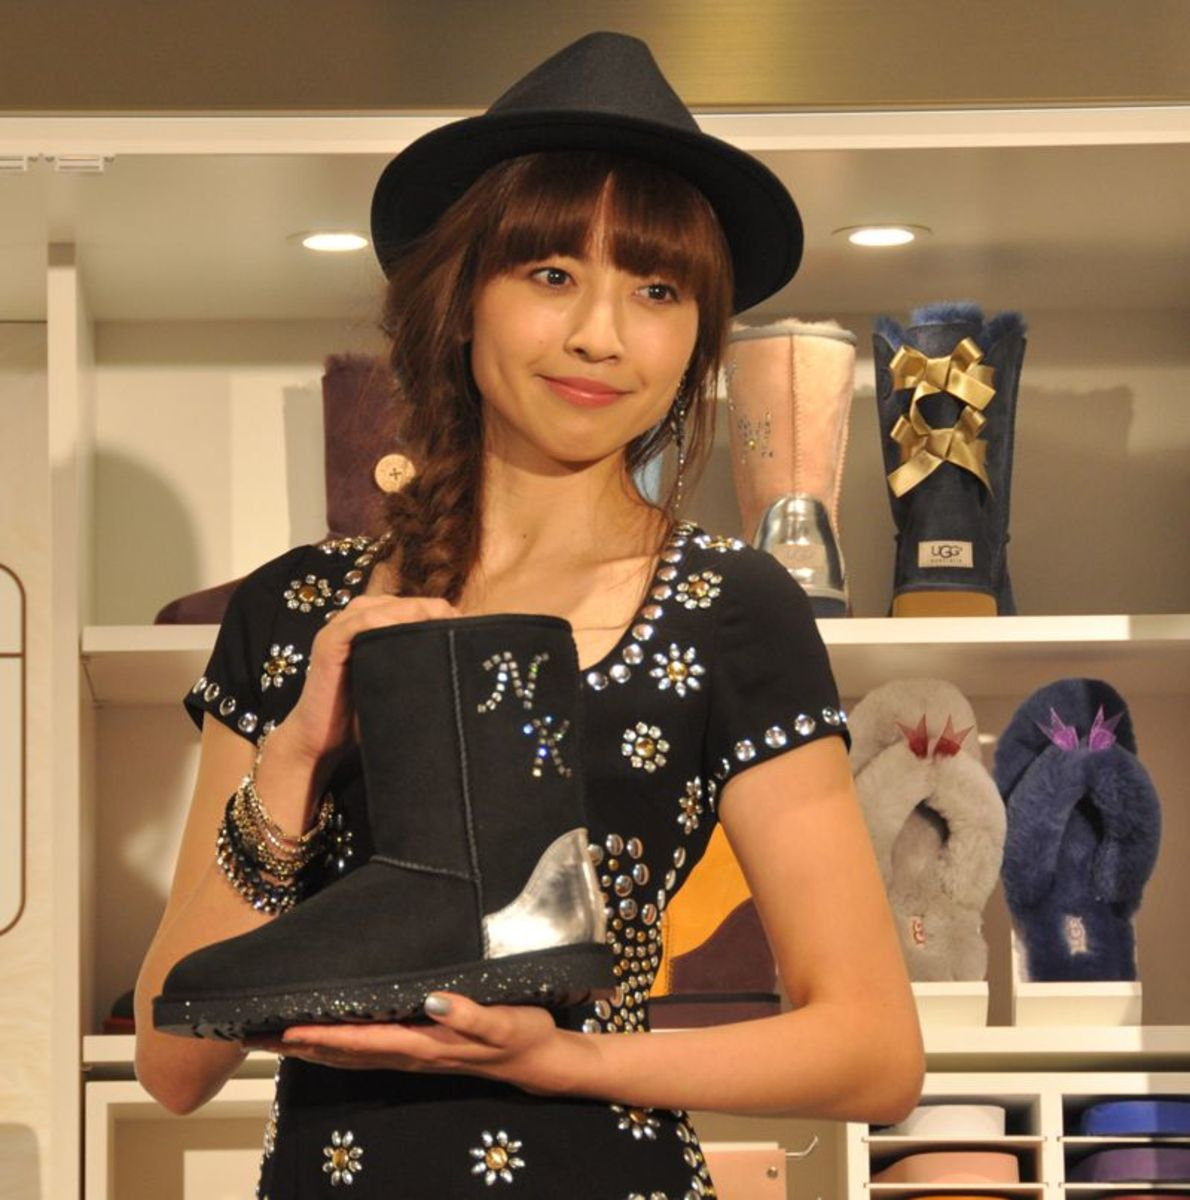 Nana Katase is seen here at the event for the UGG Boots in Shibuya.